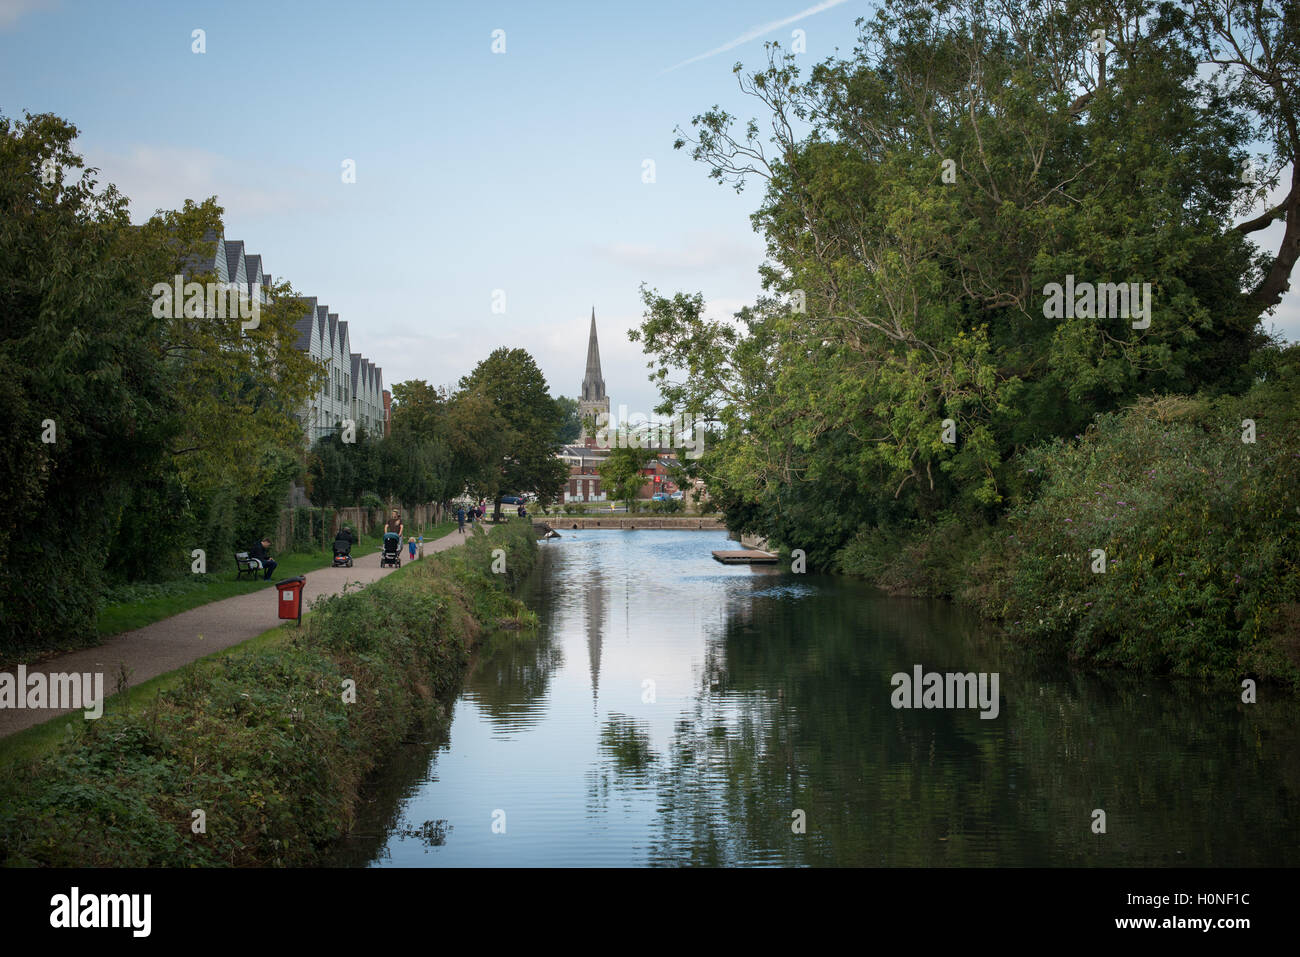 People walk along the towpath next to Chichester Canal in Chichester, West Sussex. - Stock Image